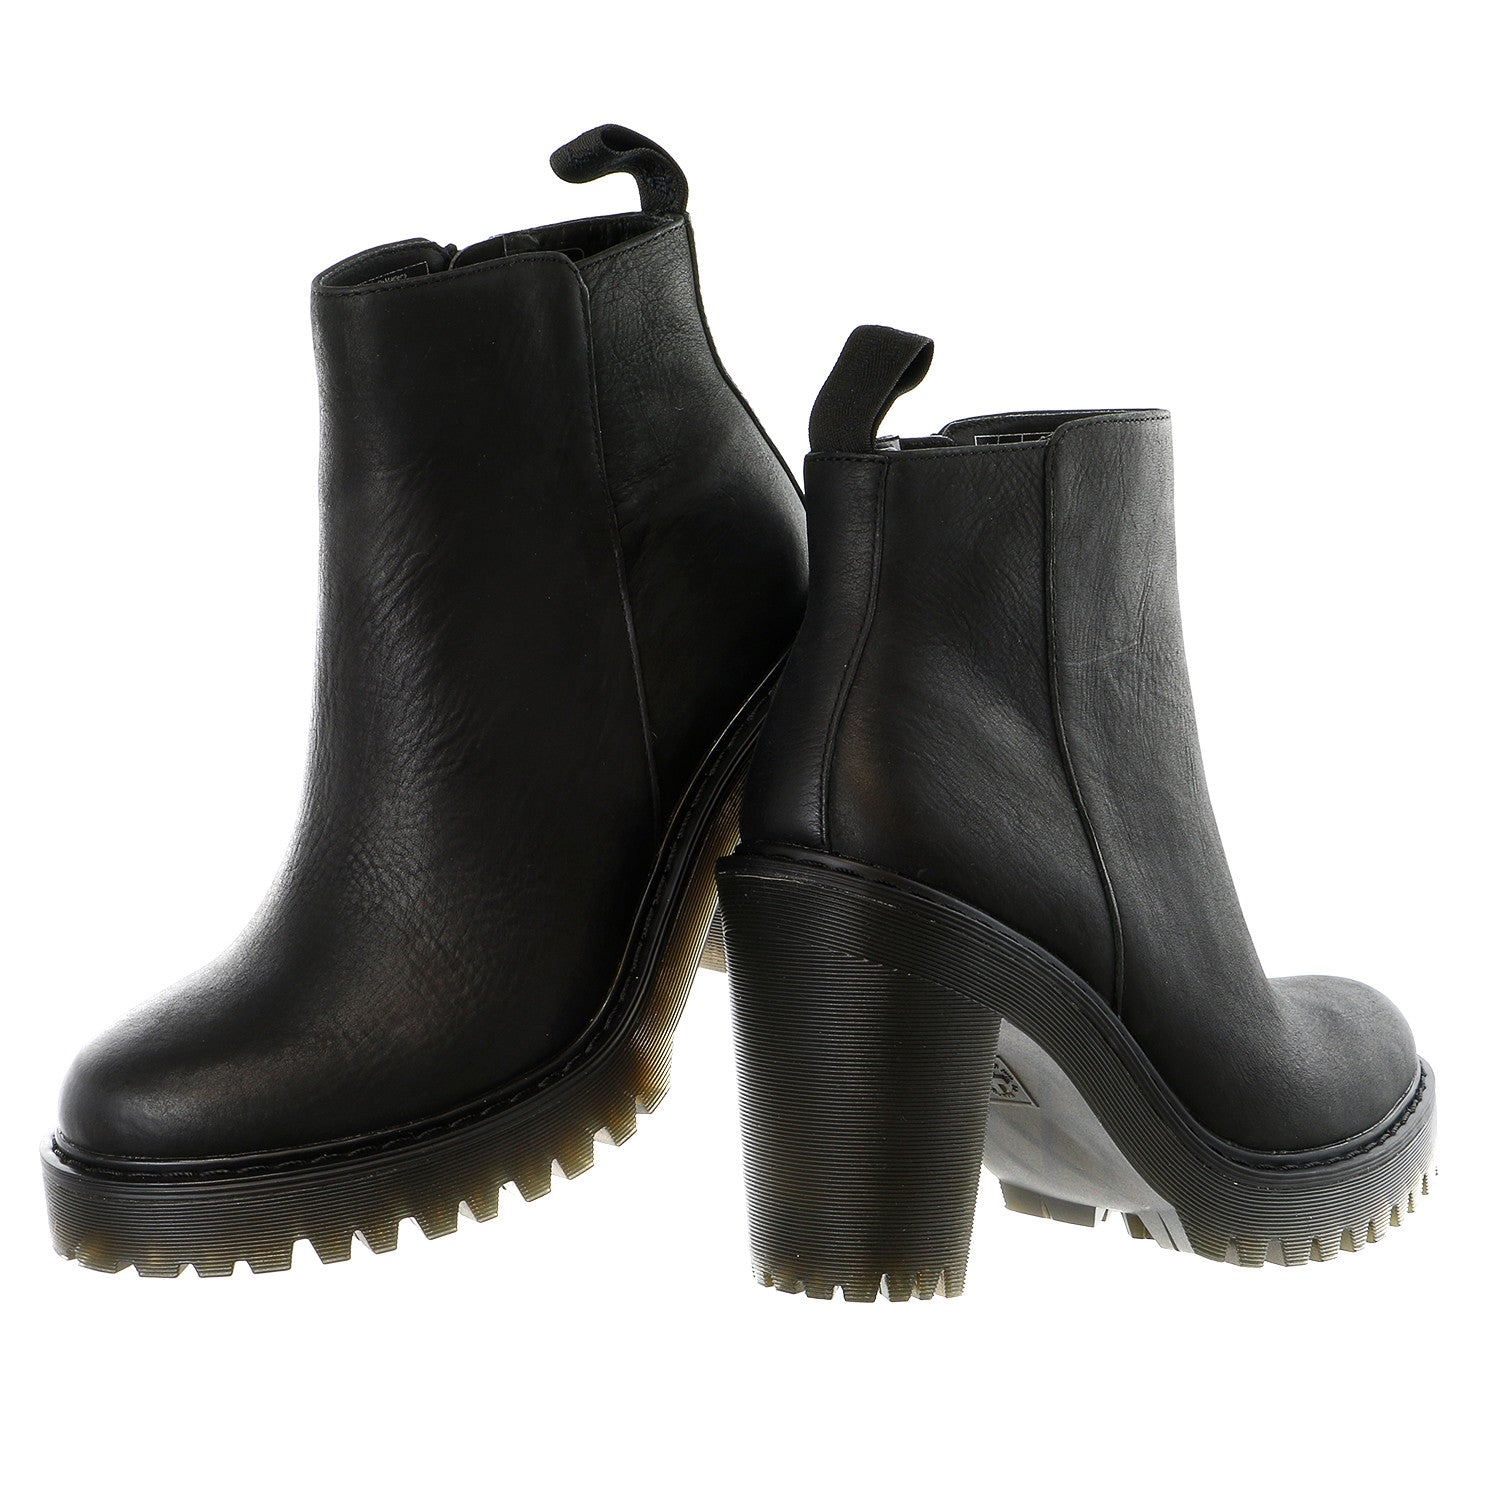 6b39dcbd7defd Dr. Martens Magdalena Ankle Zip Boot - Women s - Shoplifestyle